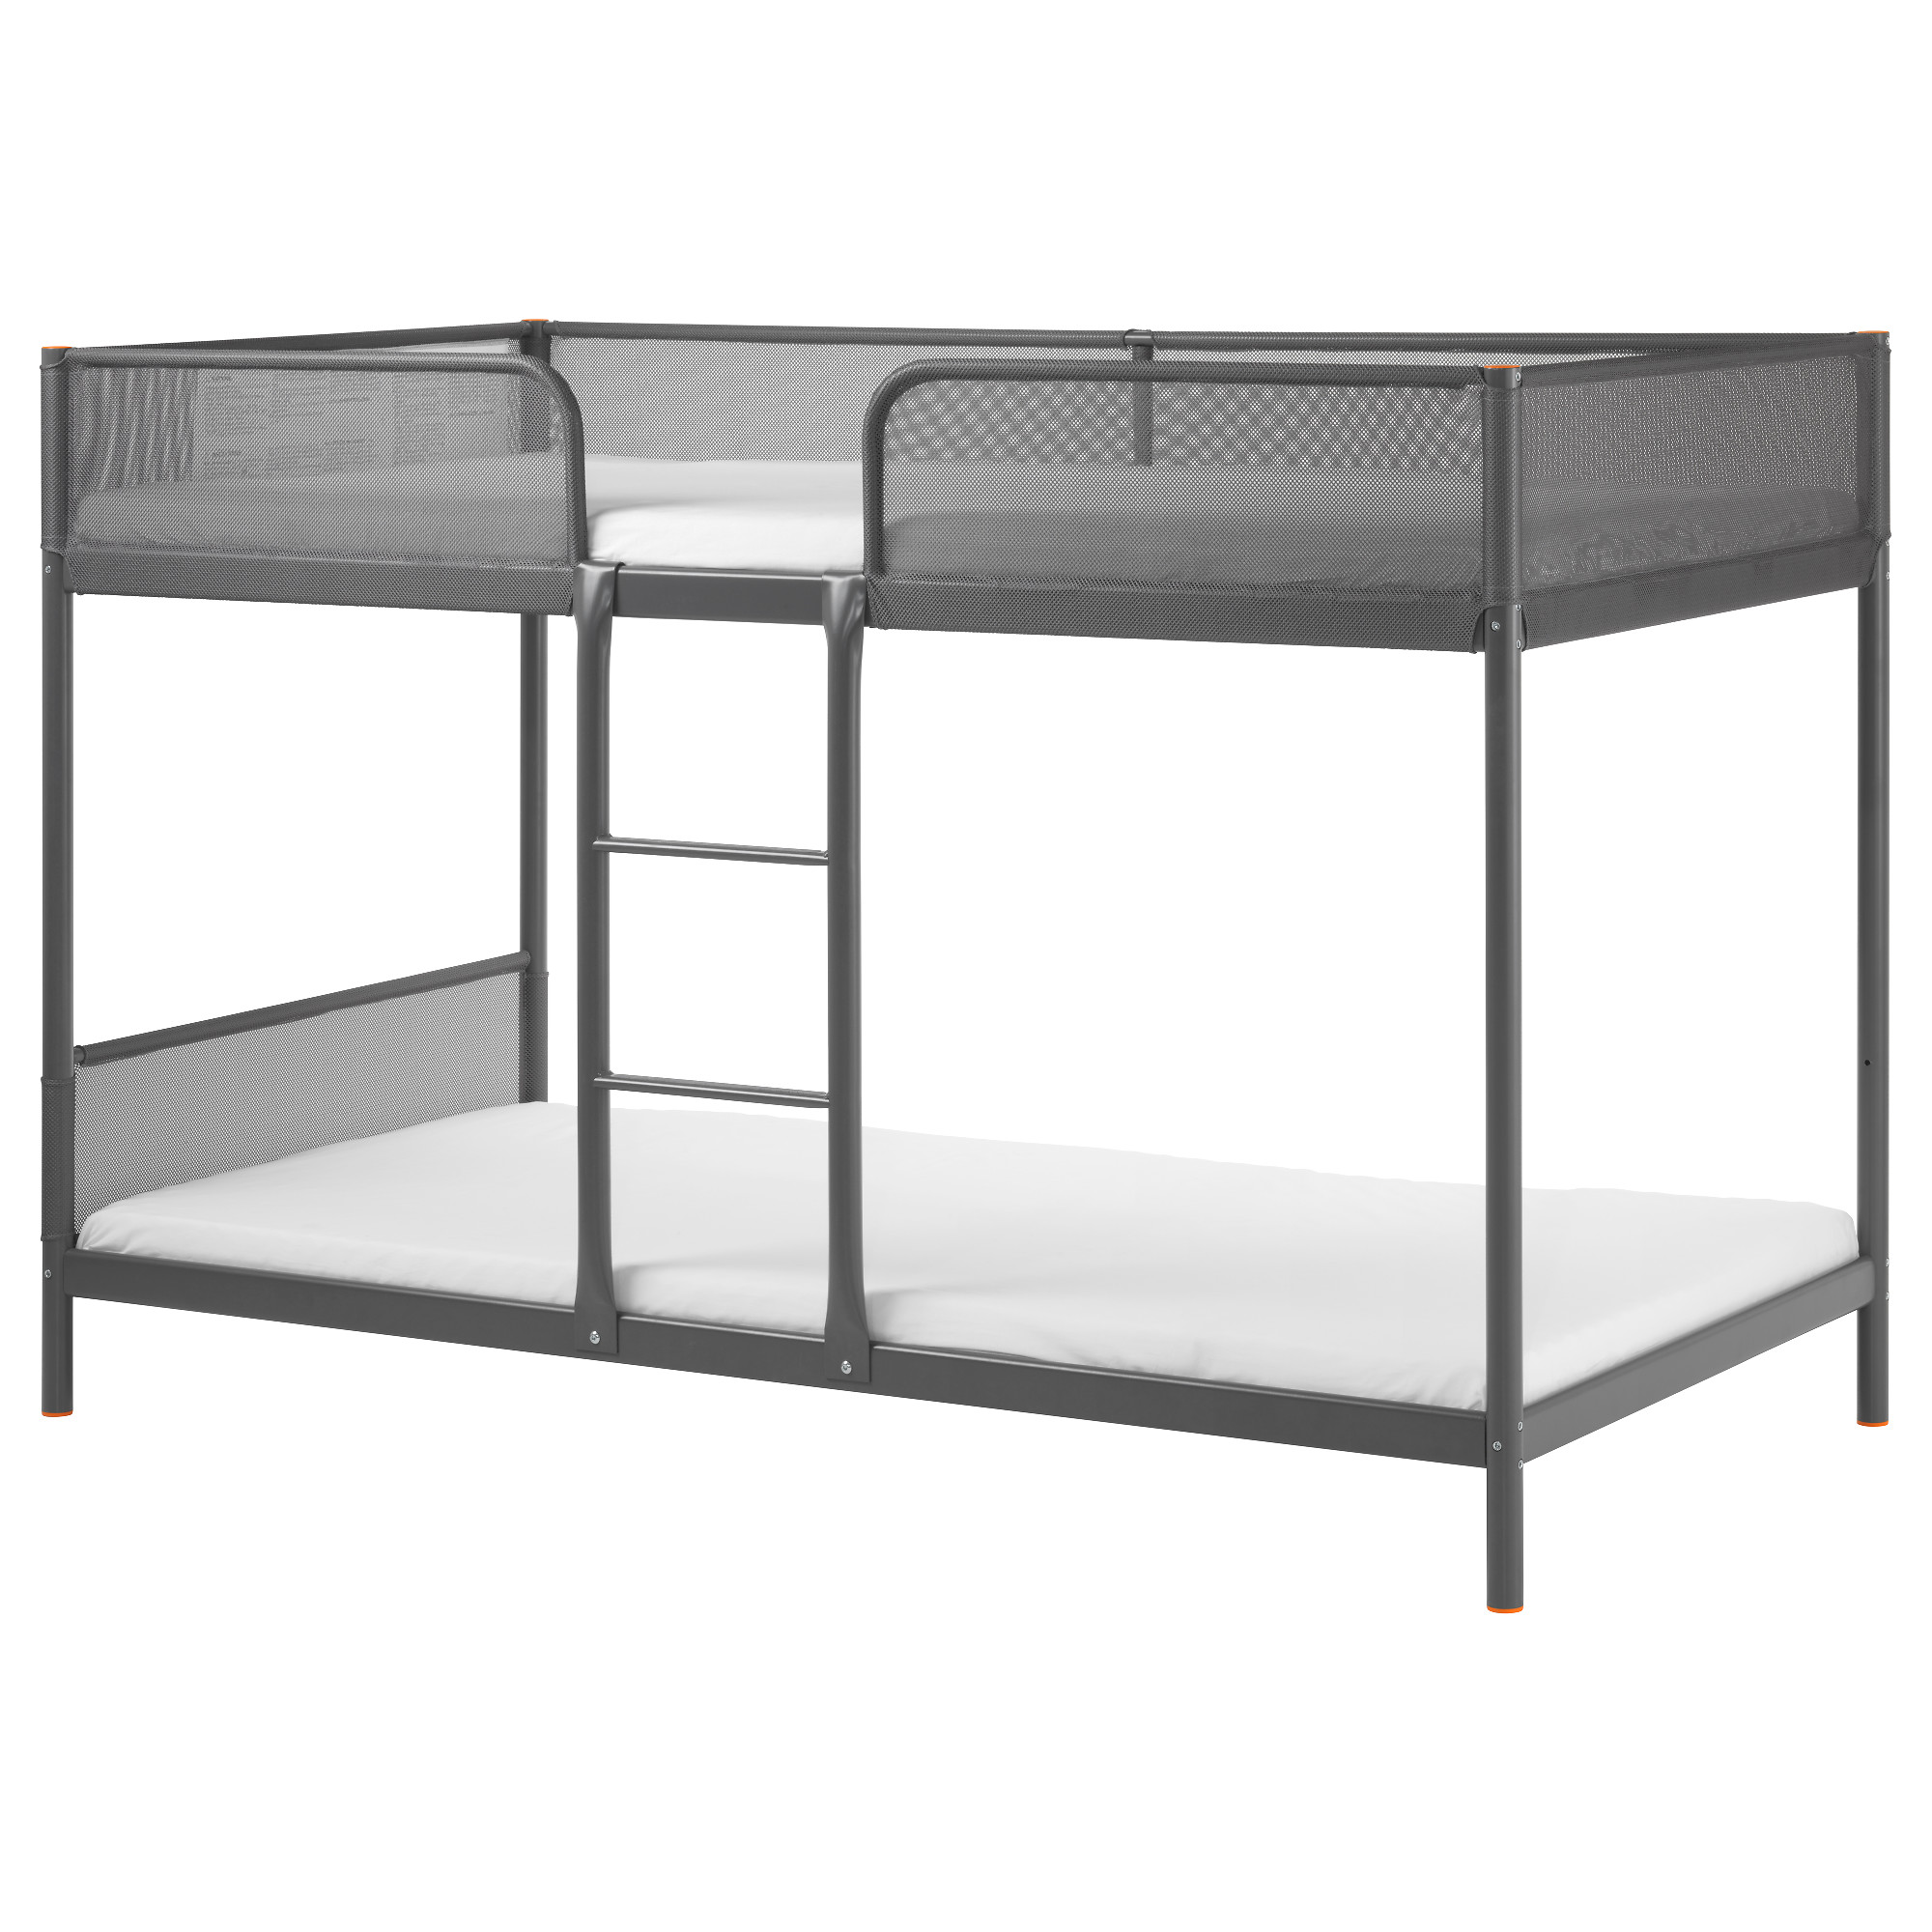 Bunk beds for kids ikea - Tuffing Bunk Bed Frame Dark Gray Length 77 1 2 Width